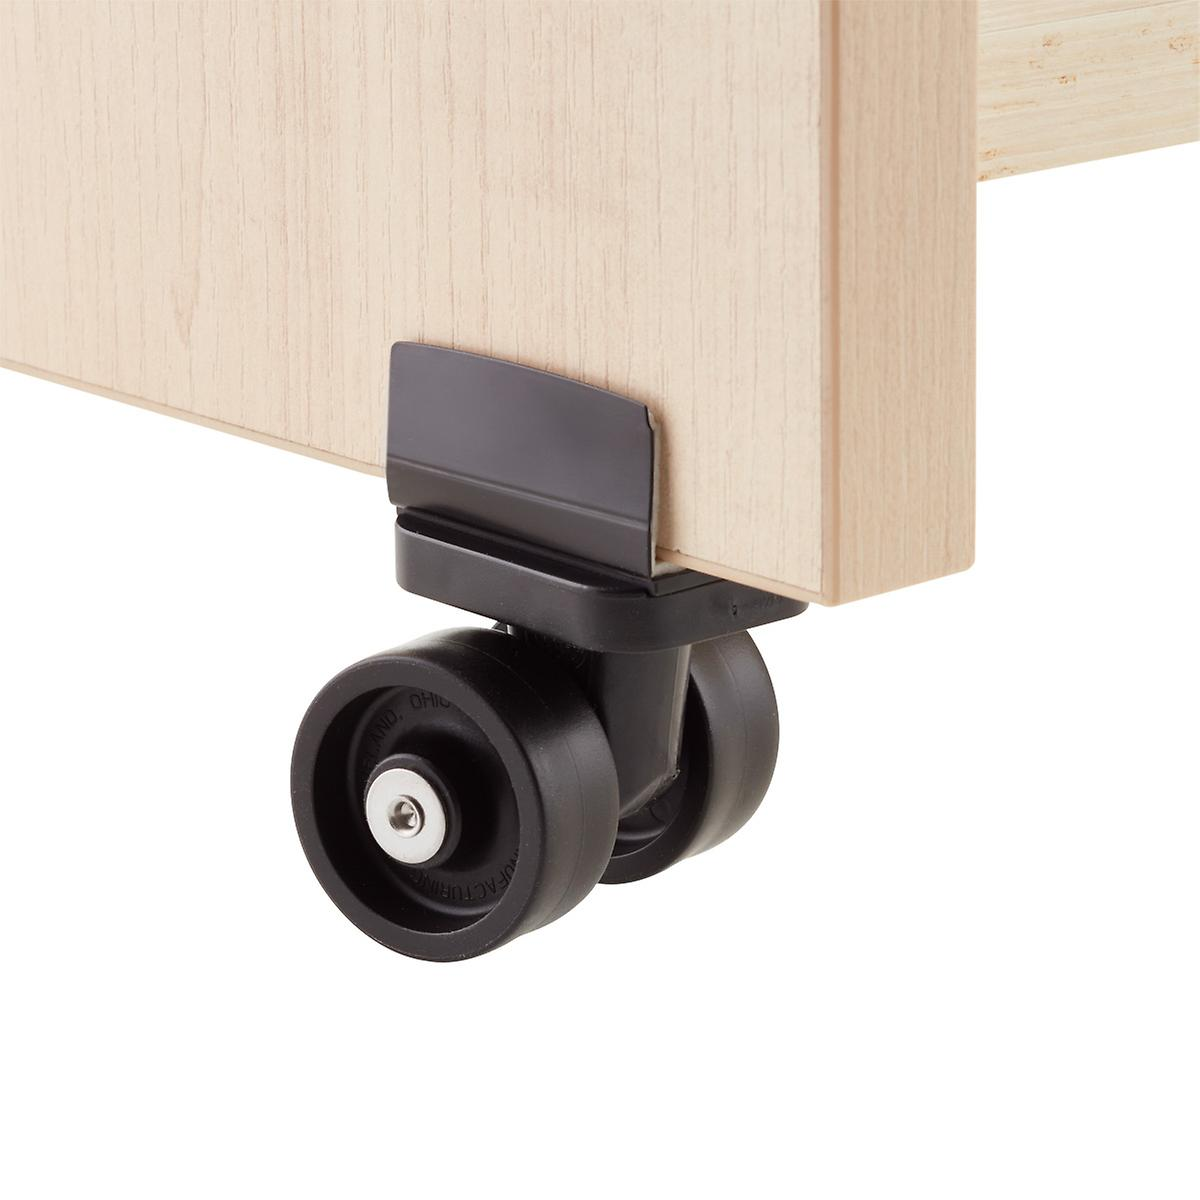 Self-Adhesive Swivel Wheels